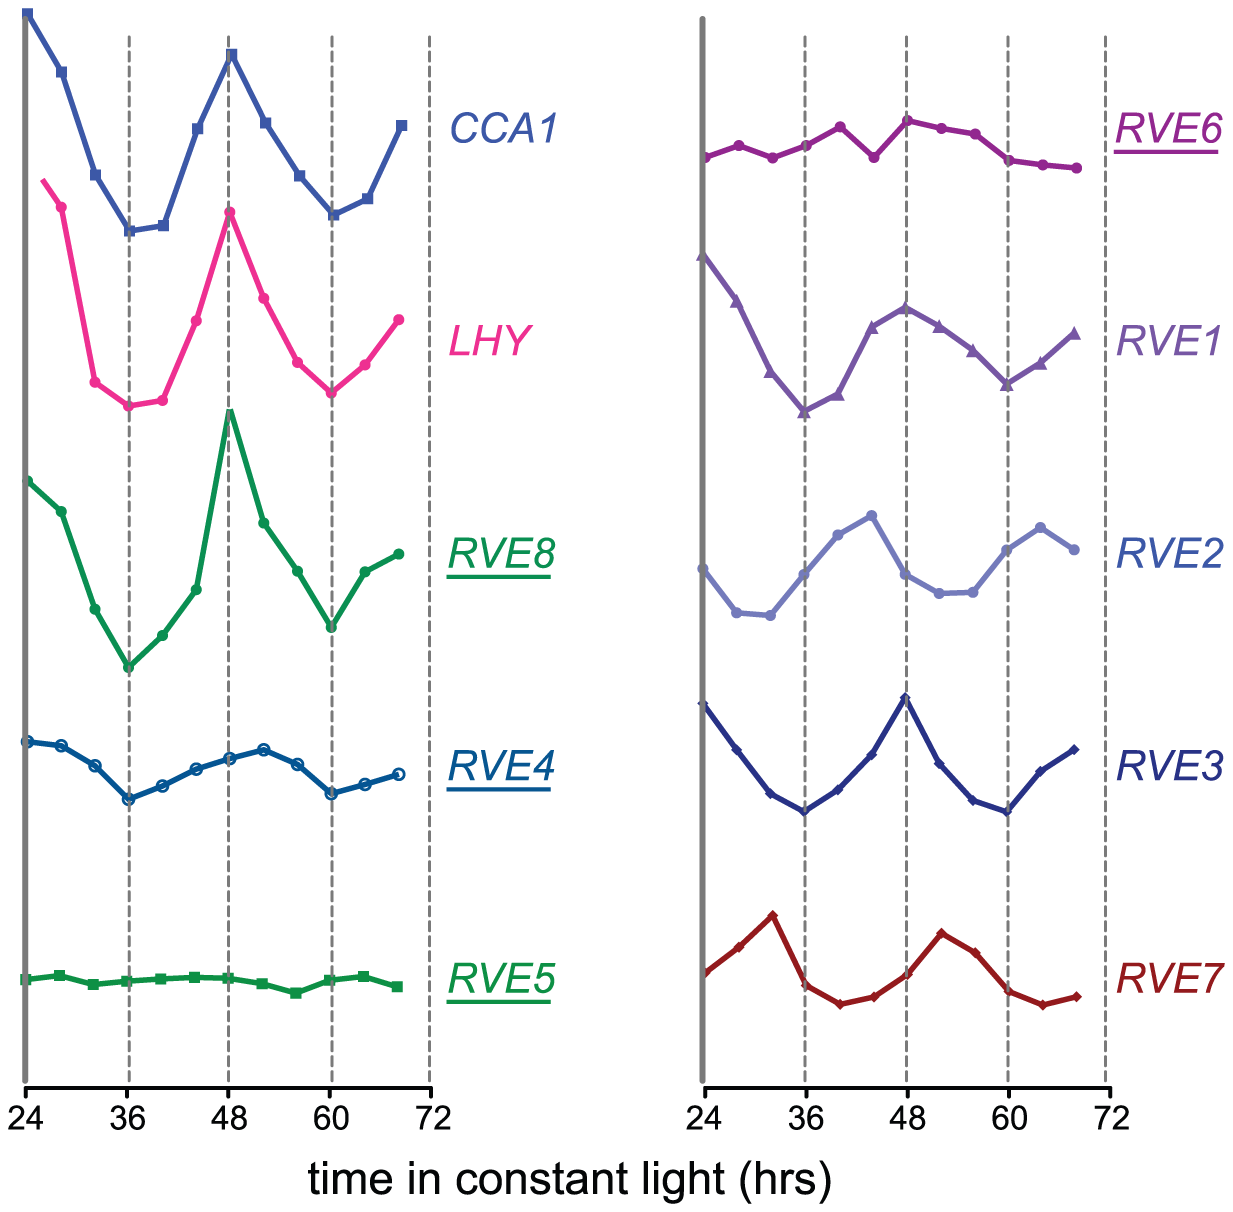 Circadian expression patterns of the <i>CCA1</i>, <i>LHY</i>, and <i>RVE</i> genes.